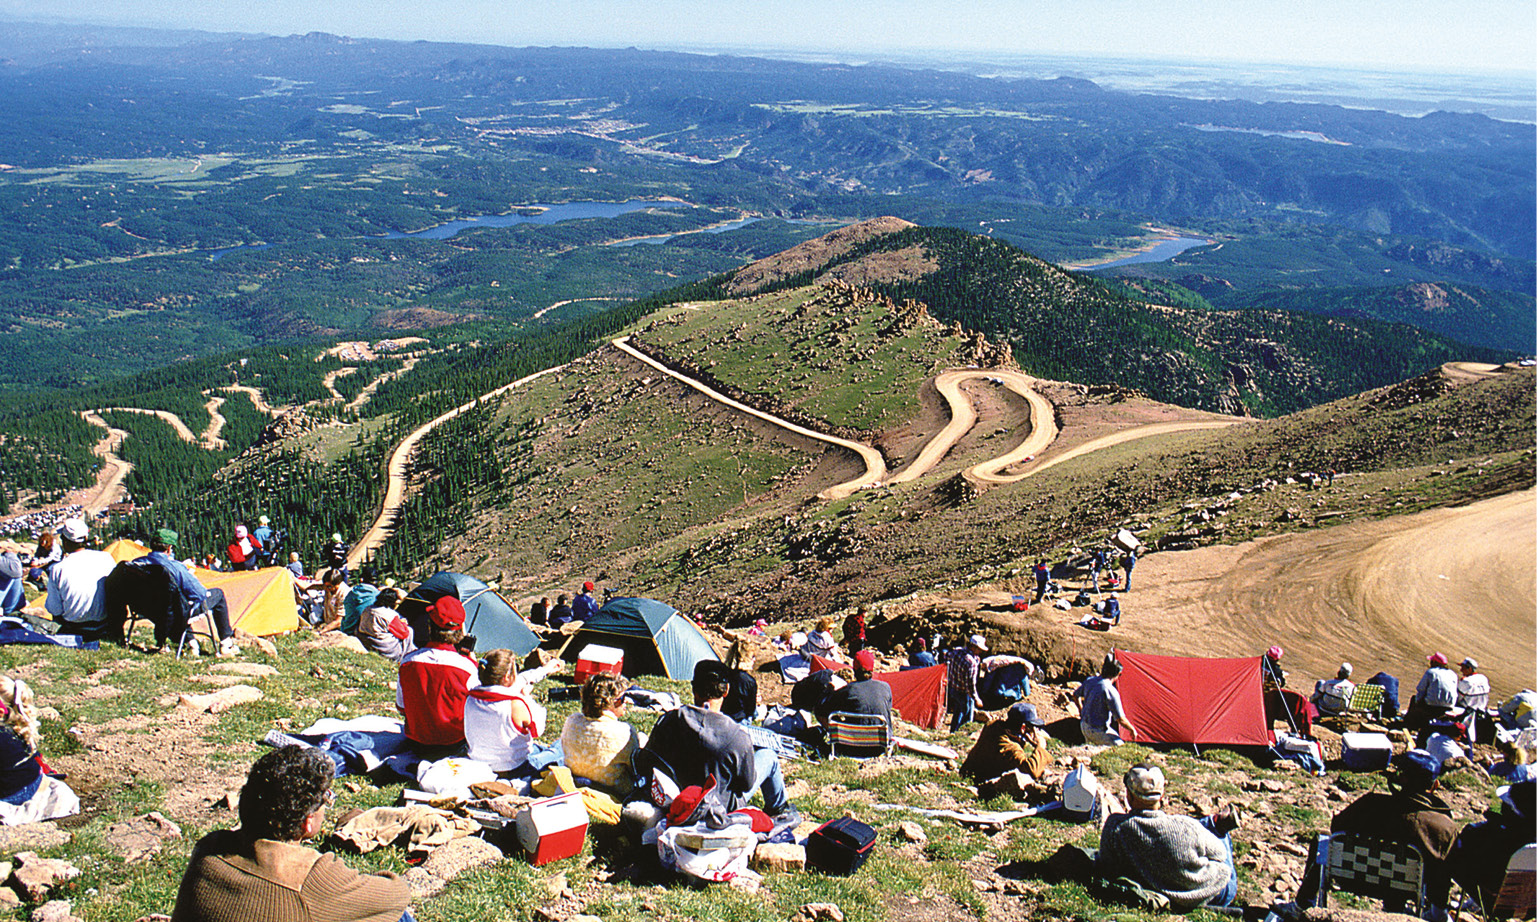 Who says Pikes Peak is all dust? Stunninly green landscape highlights the challenging track ascending.